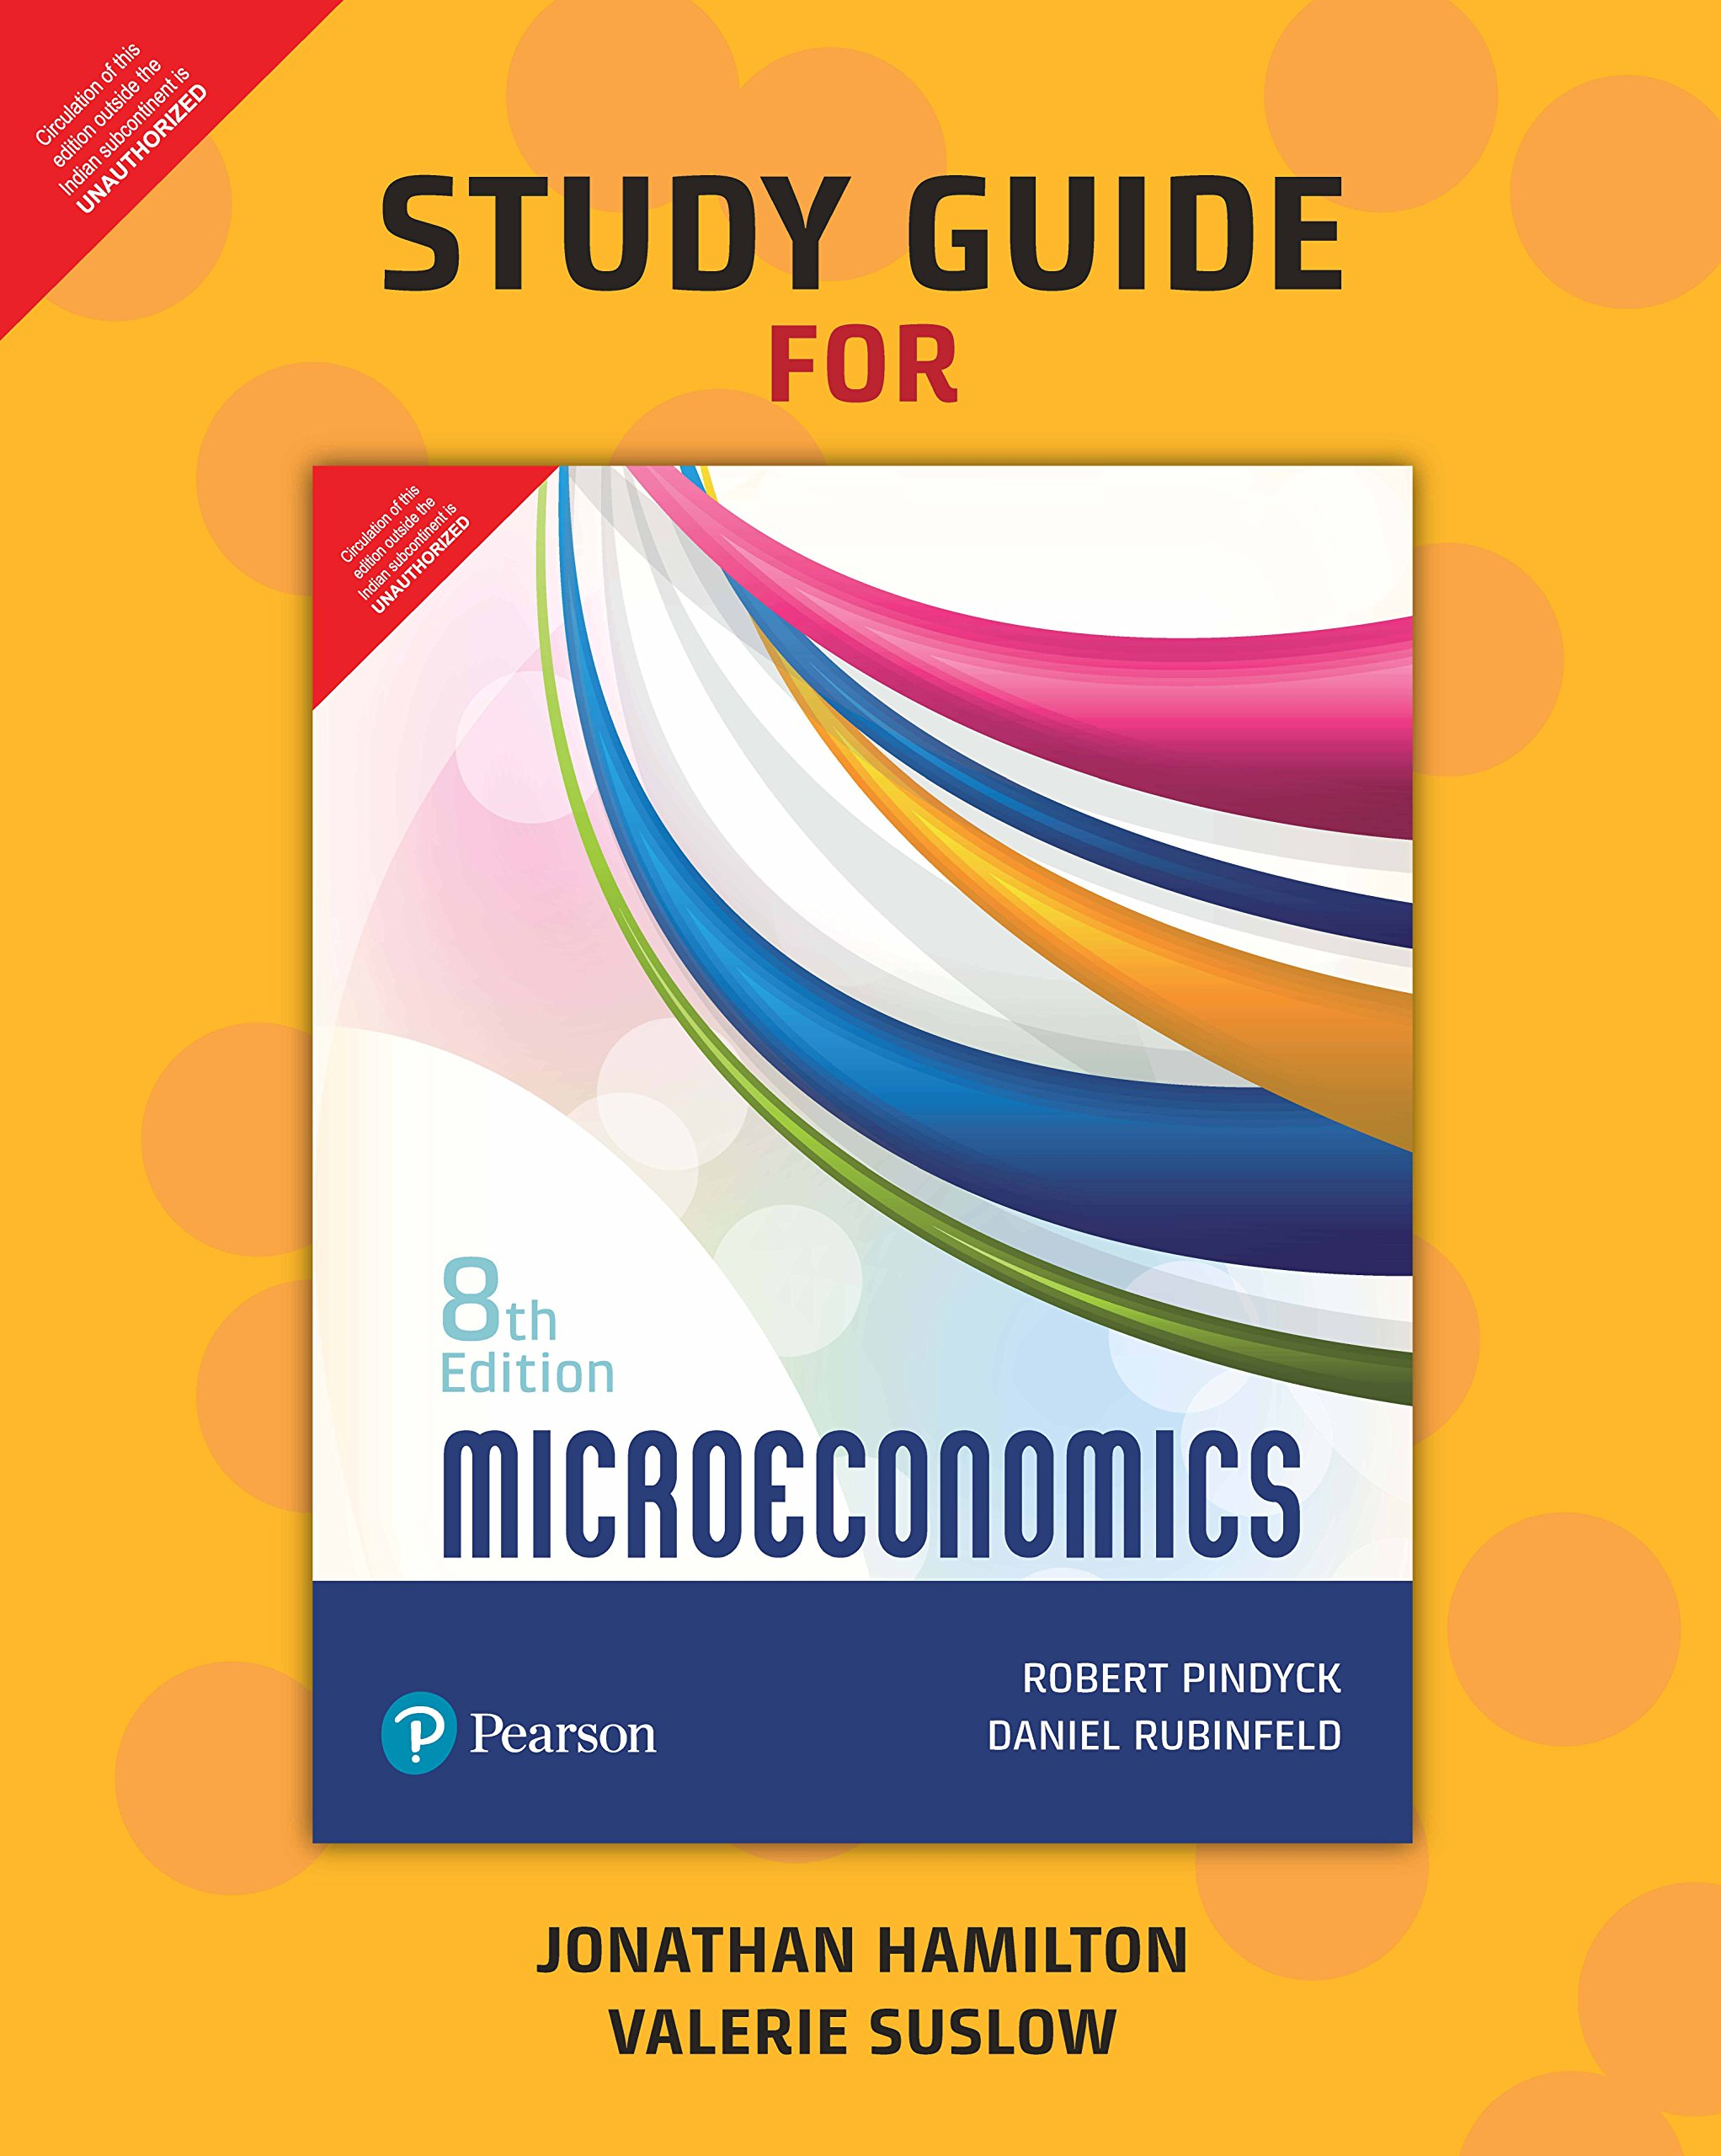 Buy Study Guide for Microeconomics by Pearson Book Online at Low Prices in  India | Study Guide for Microeconomics by Pearson Reviews & Ratings -  Amazon.in